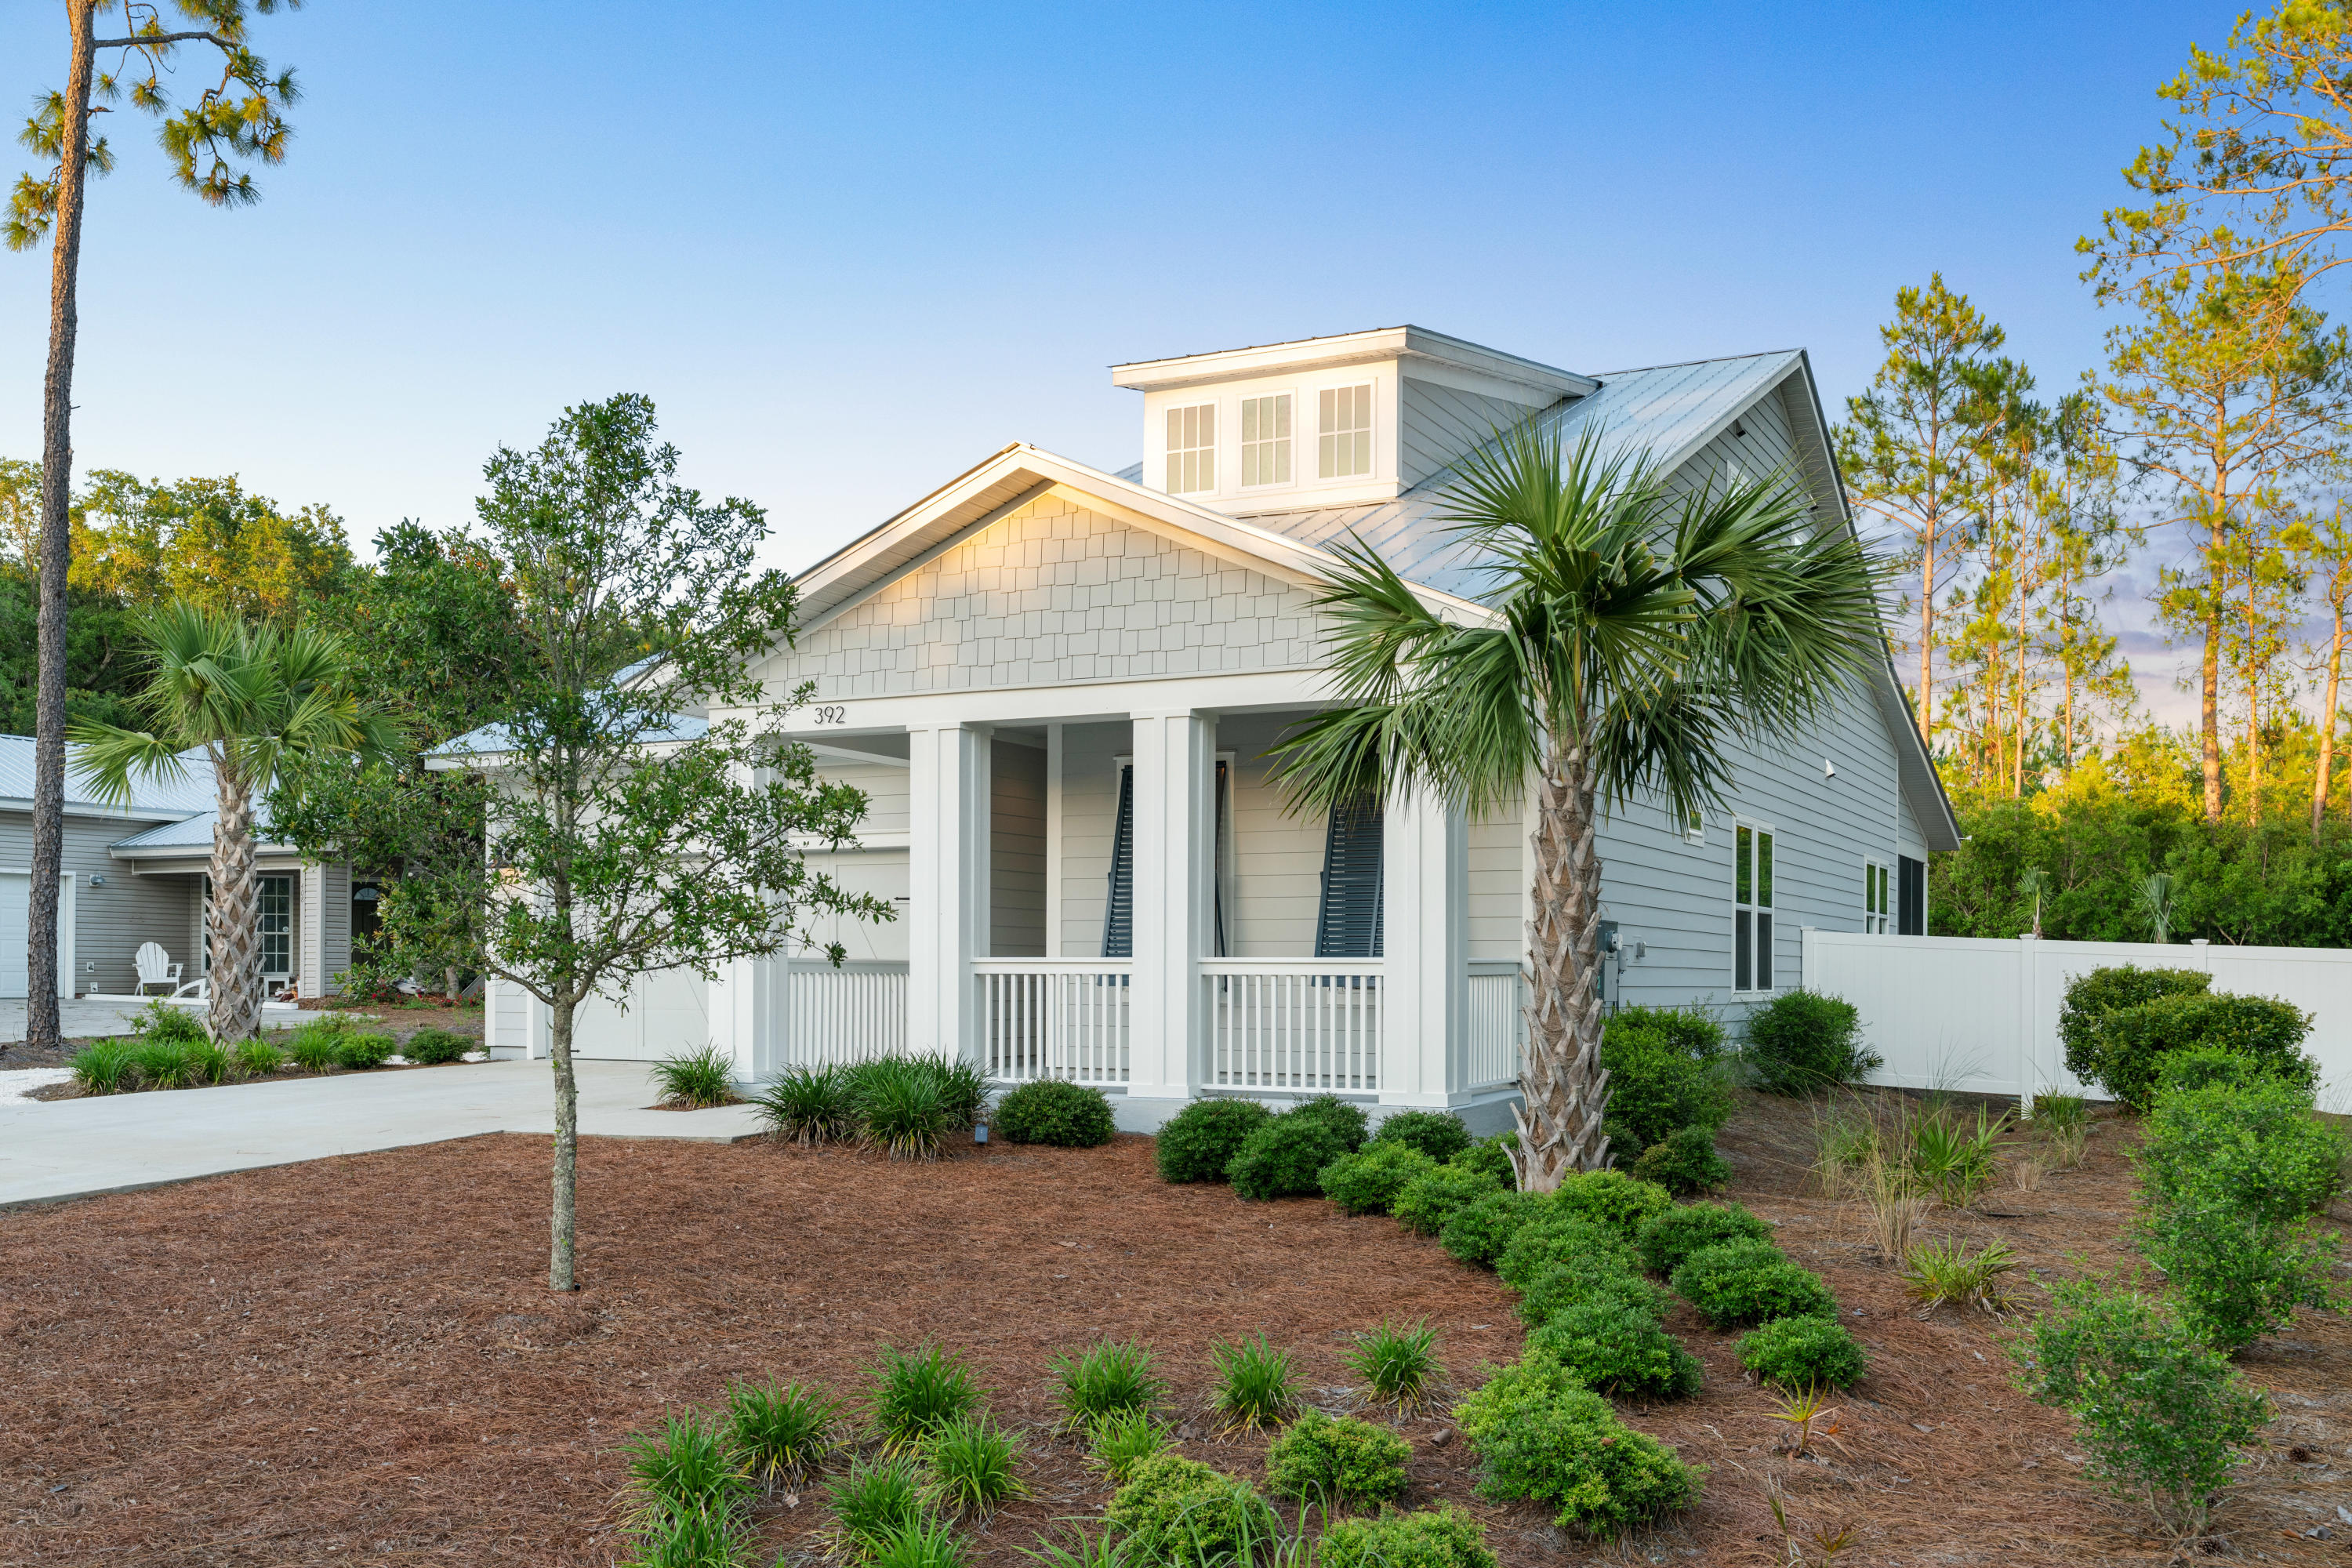 Thoughtfully designed 4 bedroom, 3 bath beach home that backs up to Camp Creek Golf Course and is conveniently located near a public beach access on the east end of 30a!  Enjoy tons of privacy in your oversized and perfectly manicured back yard that overlooks a nature preserve. Plenty of room to add a private pool if so desired! This home would make for an excellent 2nd home/vacation rental as well as an amazing primary residence at the beach. Features include an open concept layout, 1st floor master suite, bonus room, engineered hardwood floors, quartz countertops, stainless steel appliances, crown molding, frameless glass shower, a shiplap feature wall & much more!  Offered partially furnished and within biking distance to Alys Beach, Rosemary Beach and multiple shops and restaurants!